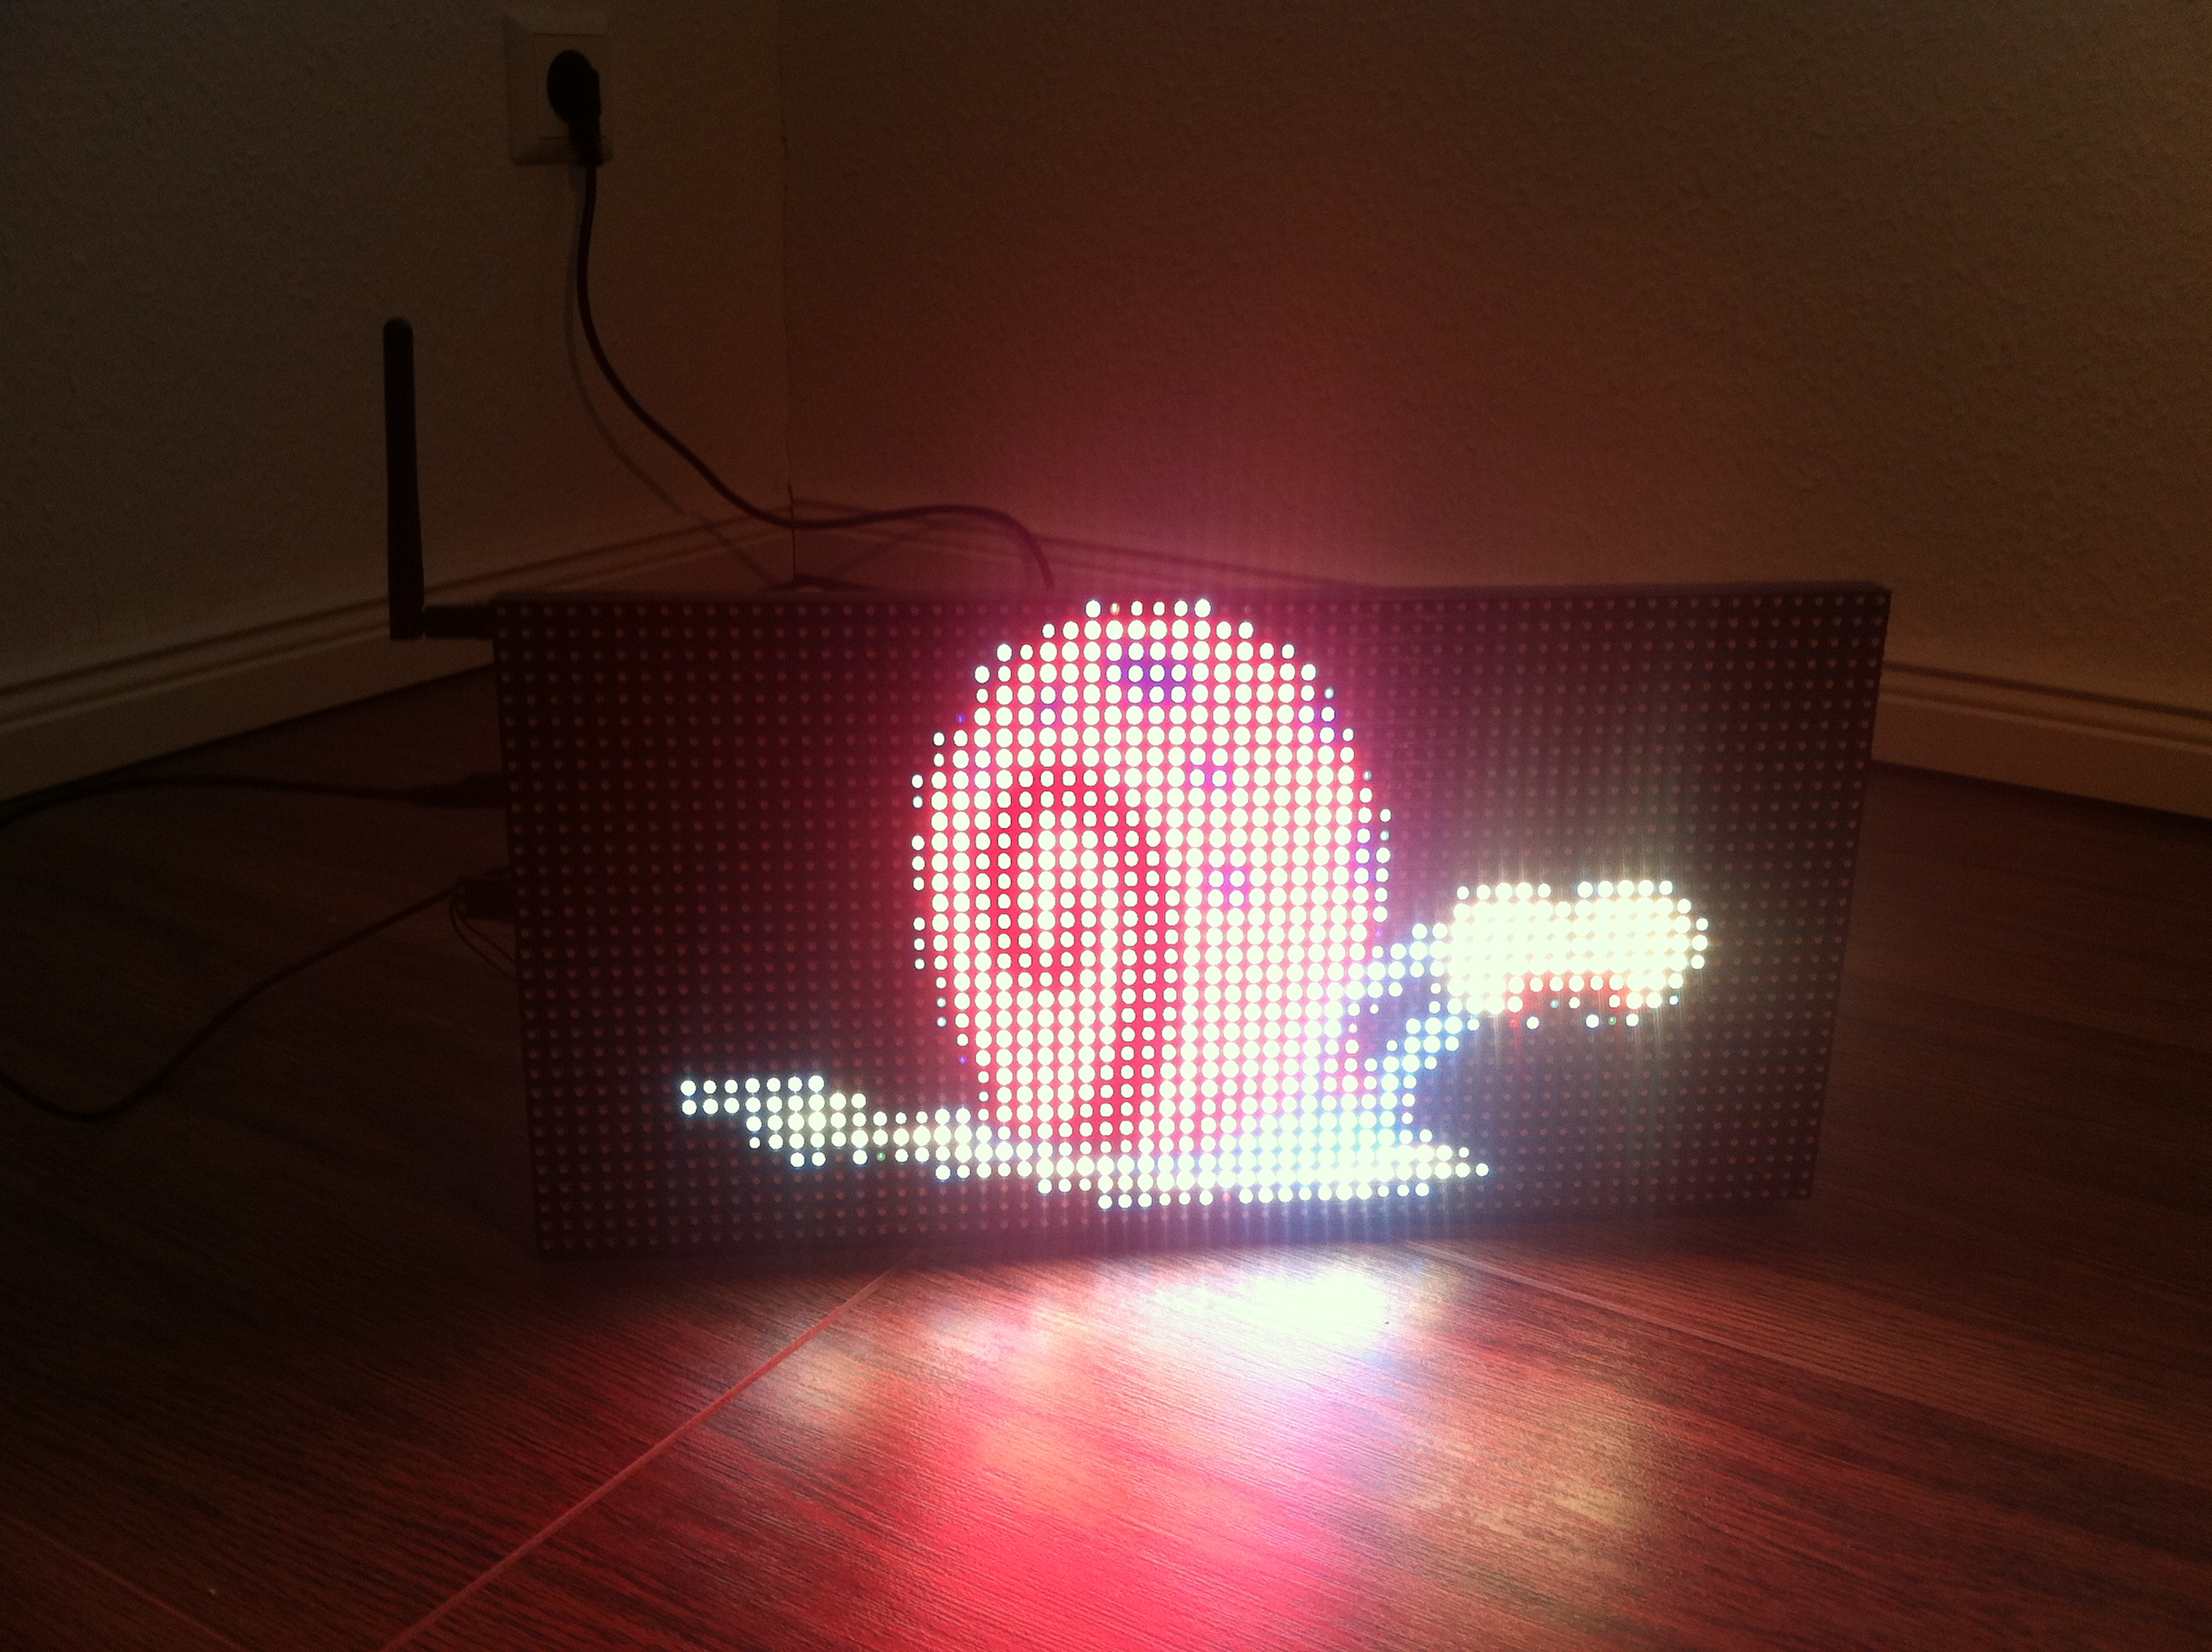 rgb led matrix tutorial